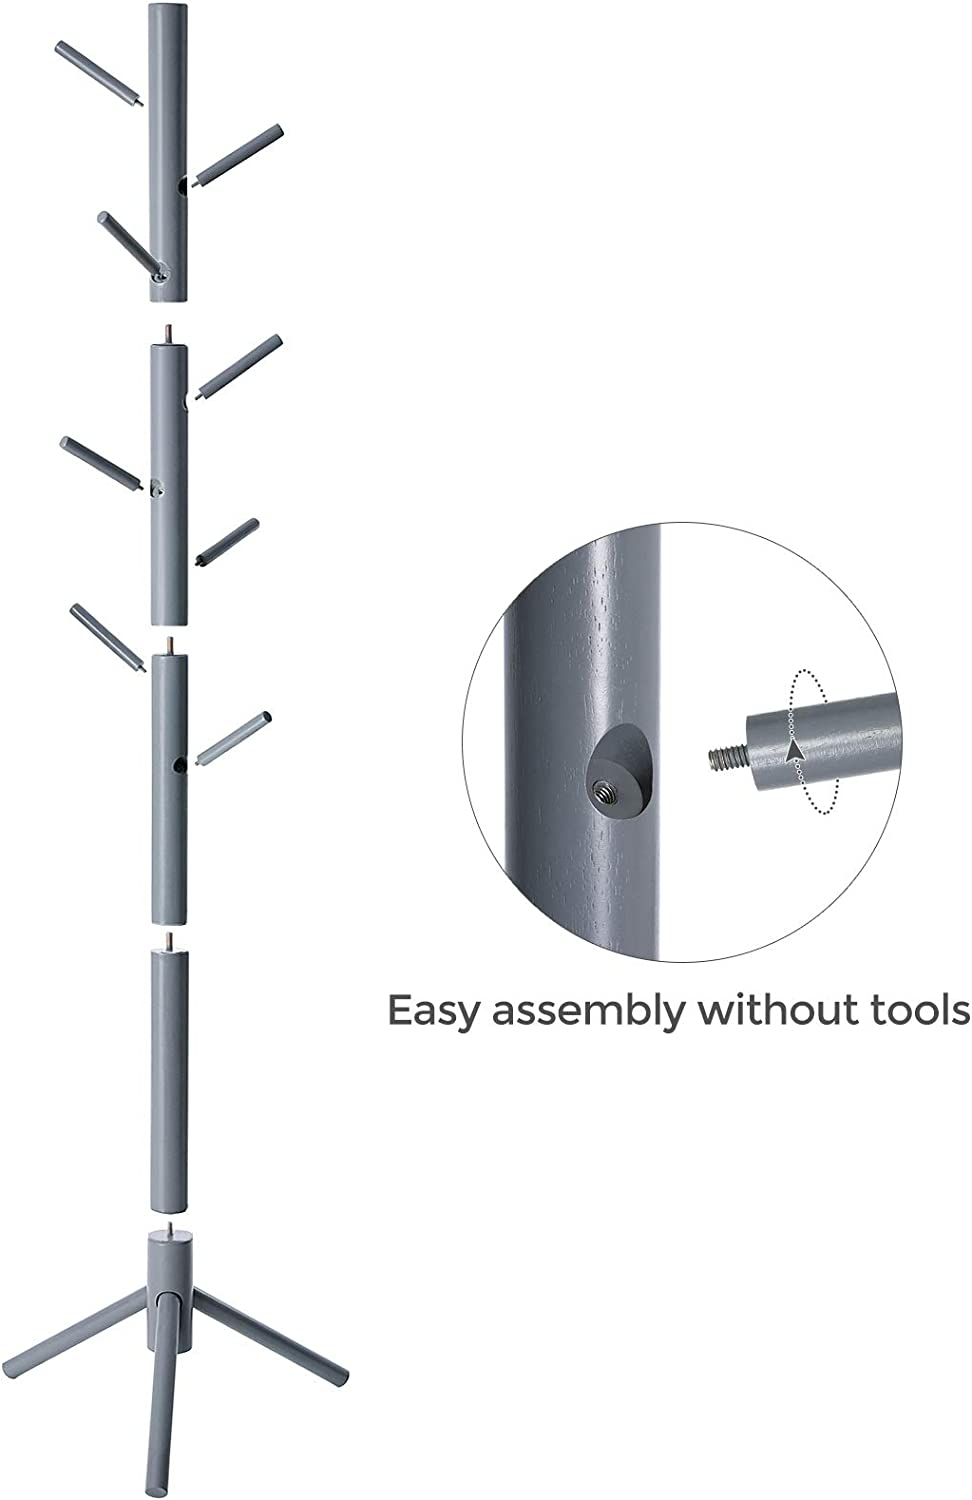 Umbrella Hats VASAGLE Coat Rack Free Standing with 8 Hooks Gray URCR04GY Gray URCR04GY Solid Wood Coat Tree Entryway Organizer for Clothes Handbags